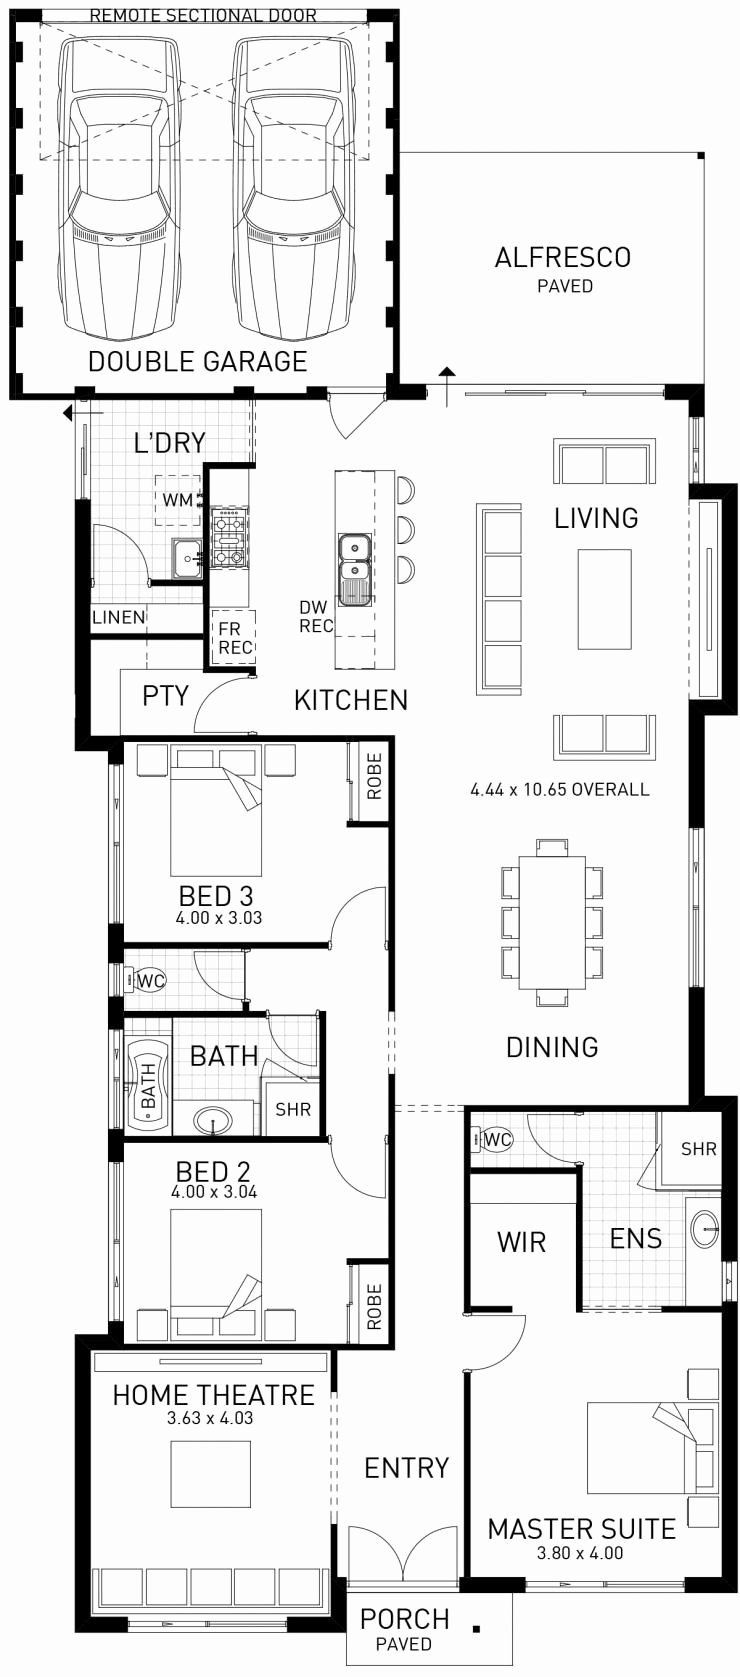 Narrow Home Designs Nsw Unique The Horizon Three Bedroom Family Home Floor Plan Design Single Storey House Plans Home Design Floor Plans